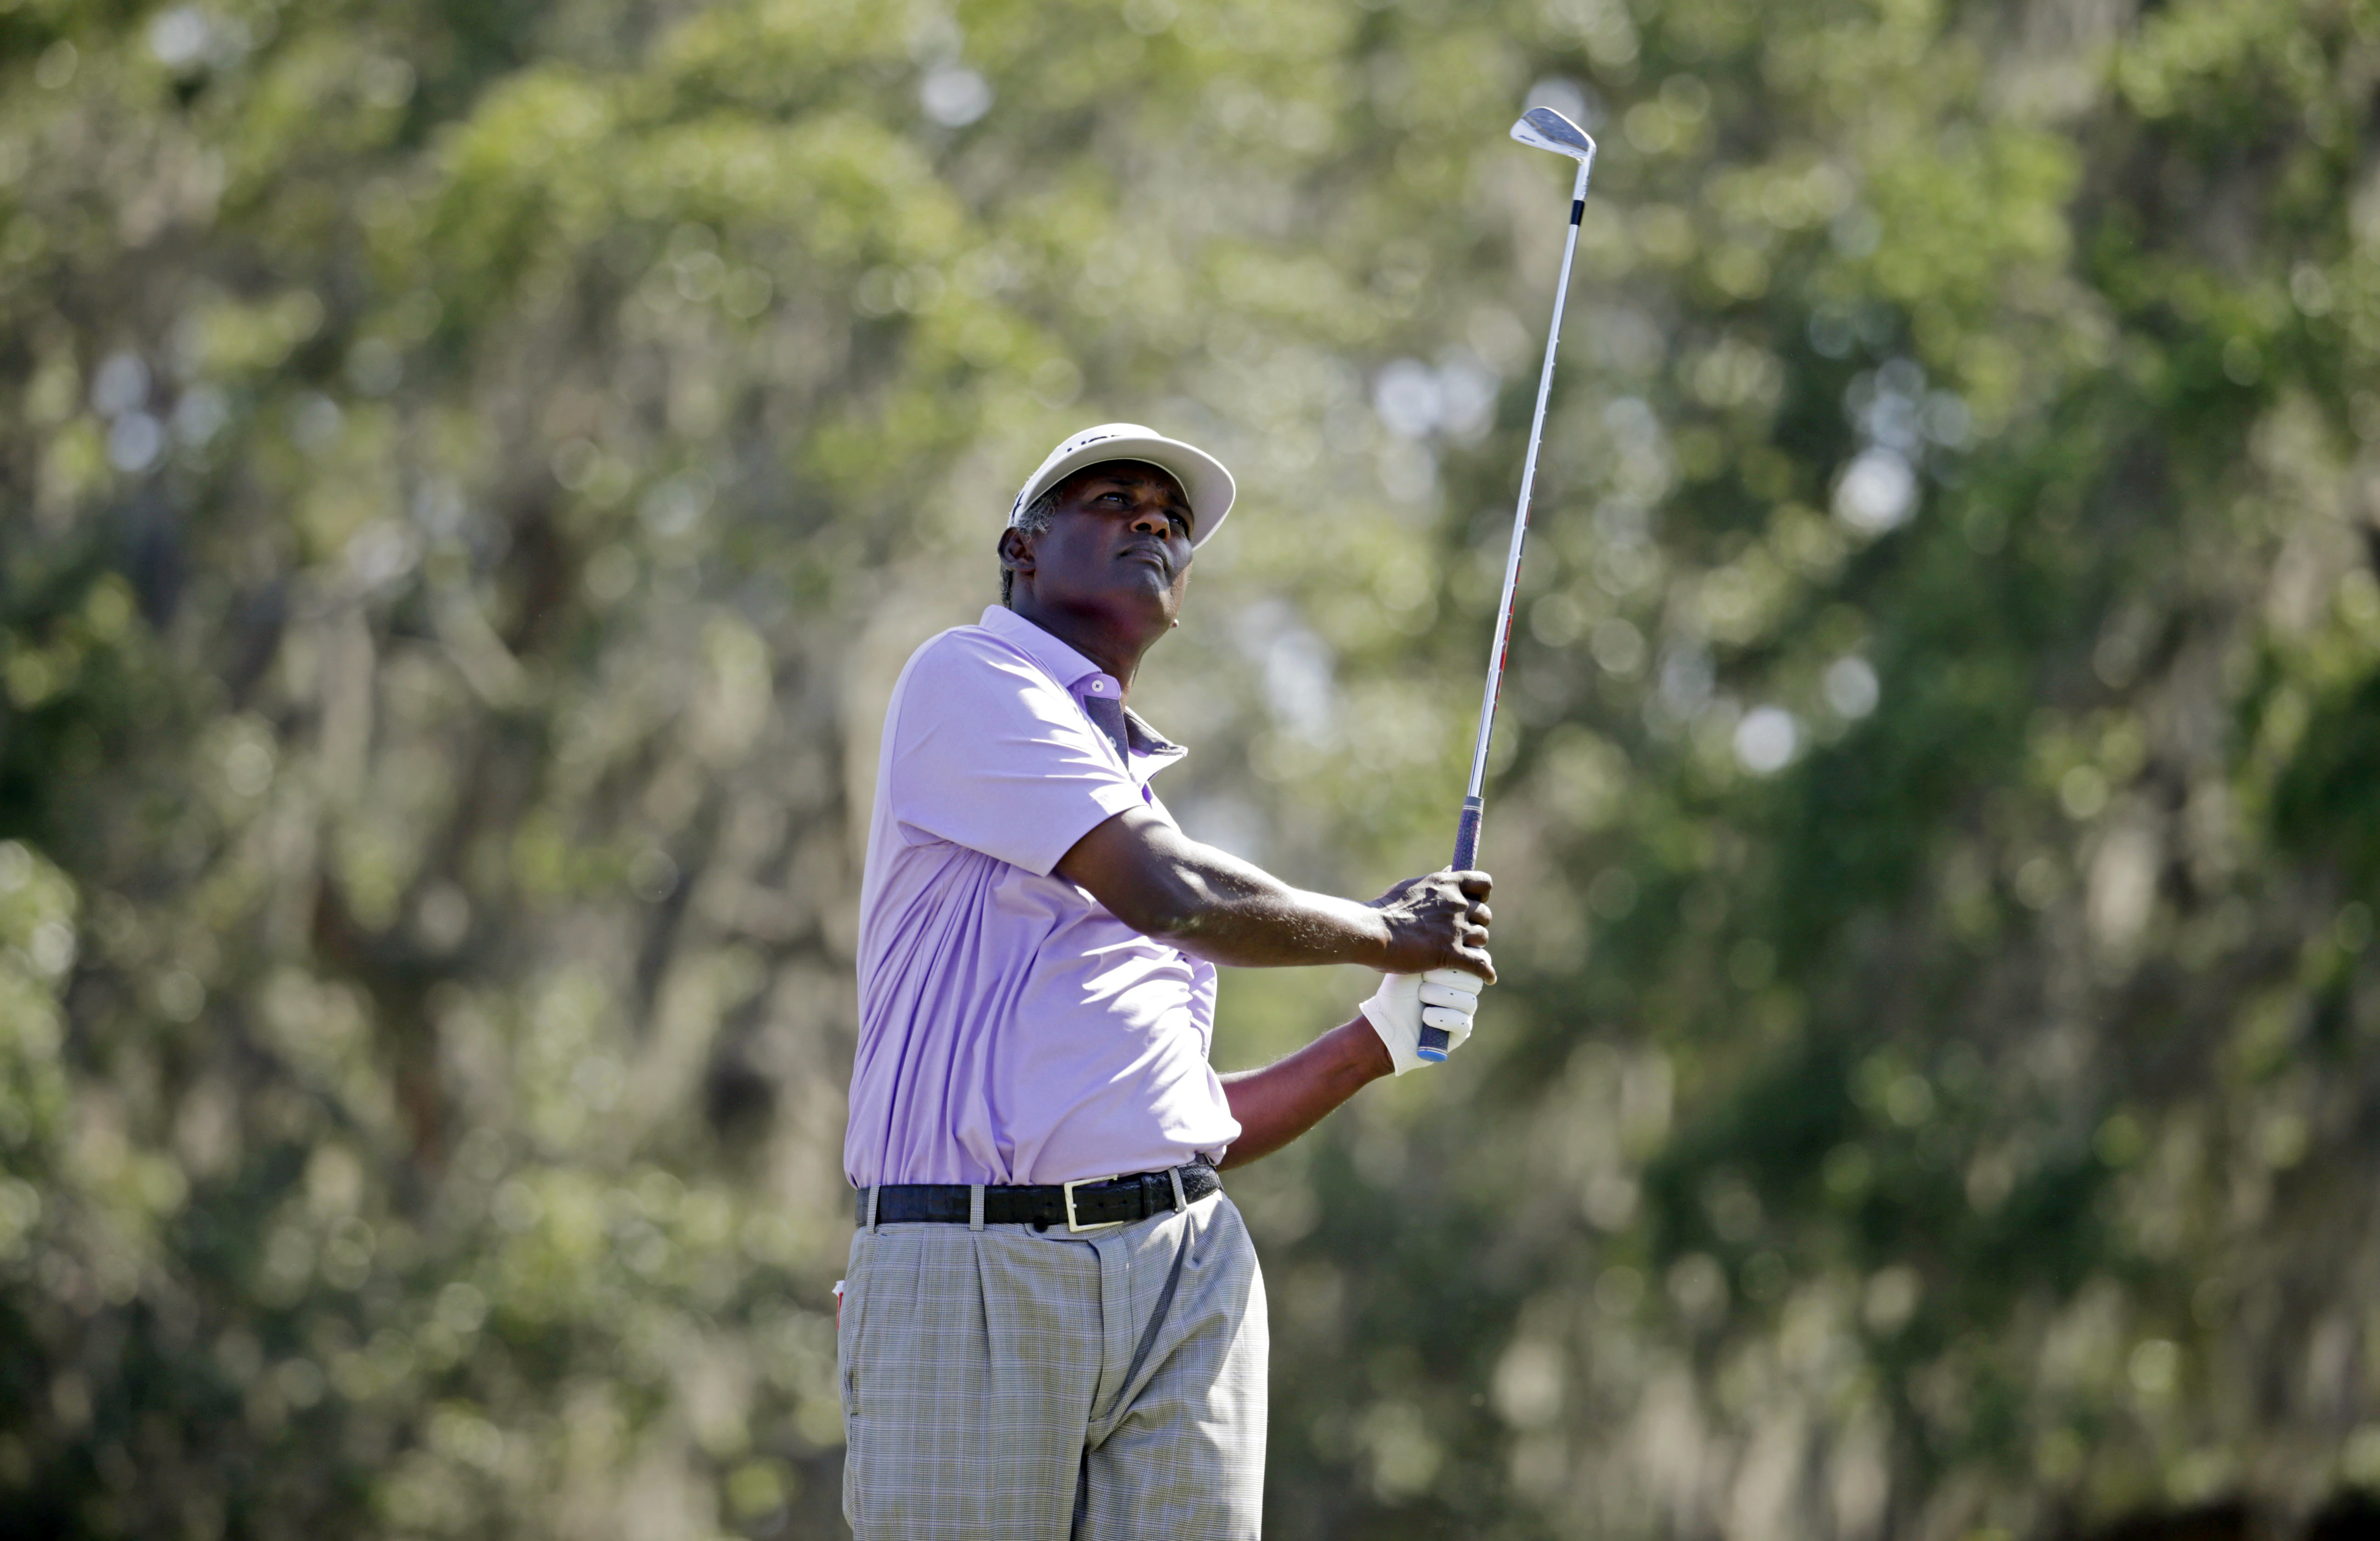 Vijay Singh, of Fiji, watches his shot from the 12th tee during the second round of The Players Championship golf tournament Friday, May 12, 2017, in Ponte Vedra Beach, Fla. (AP Photo/Lynne Sladky)